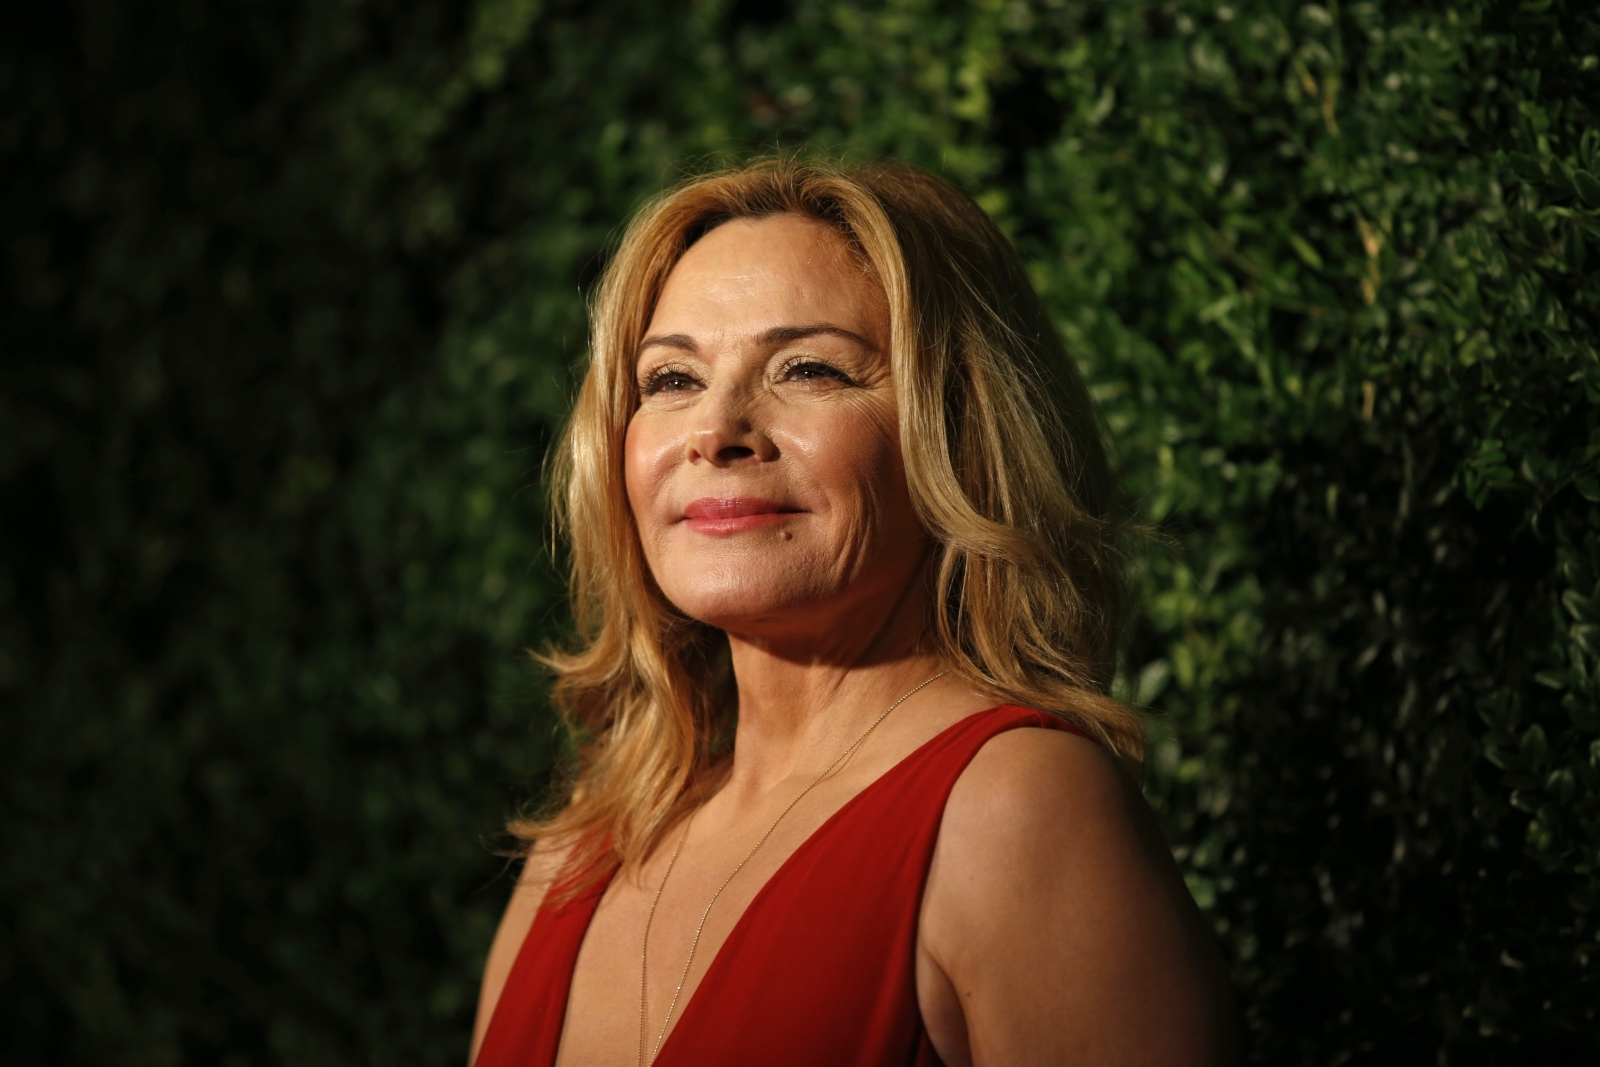 Kim Cattrall Speaks Out About Working With 'Sex And The City' Co-Stars